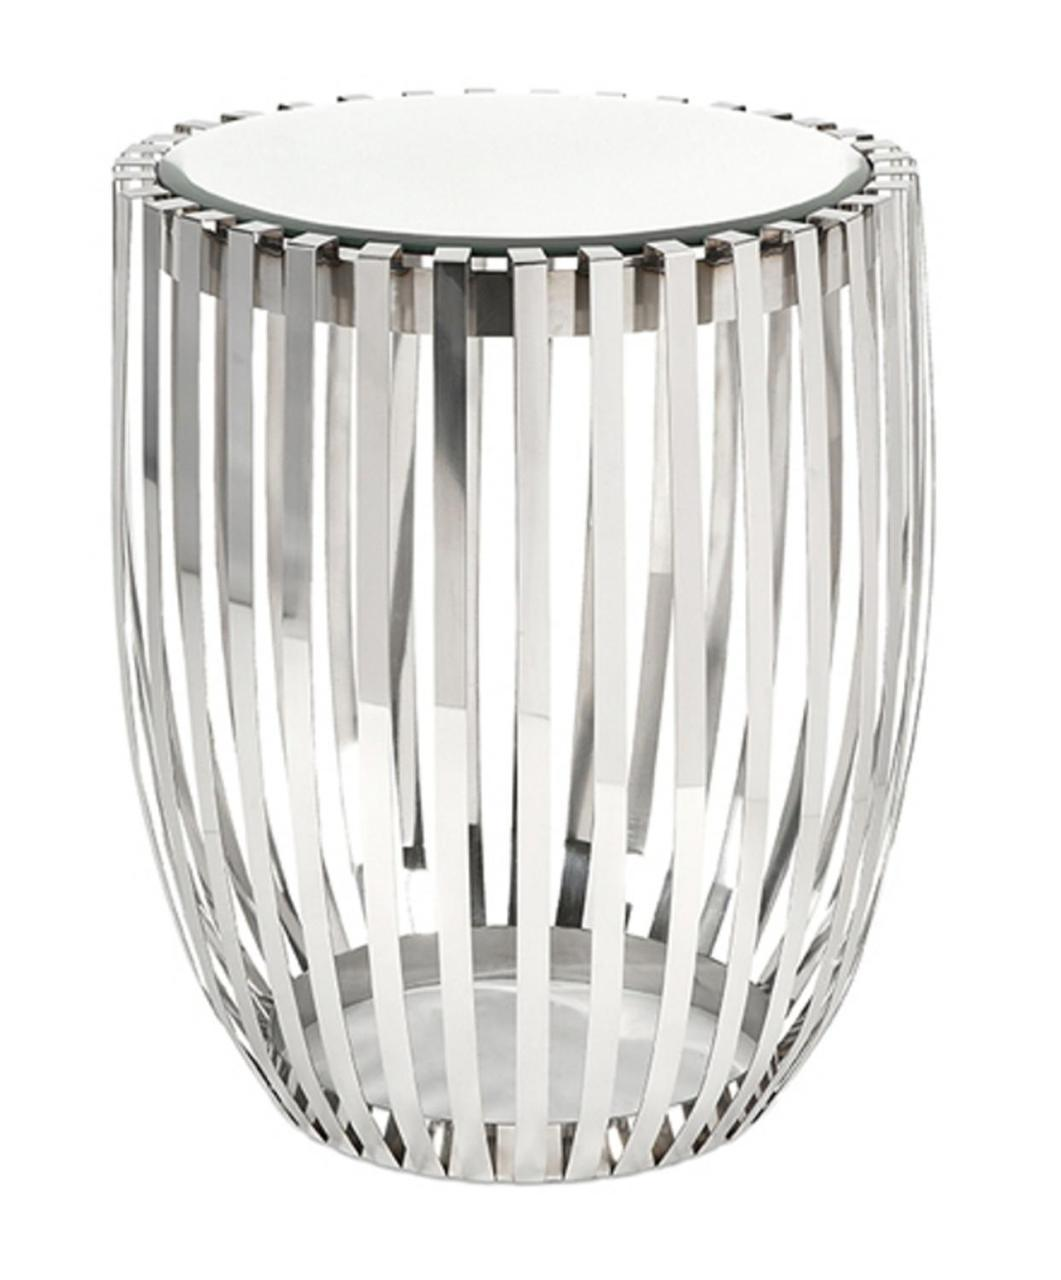 sophisticated polished steel rib mirrored top drum accent white table and round resin patio concrete home decor art narrow trestle all weather wicker side marble brass coffee